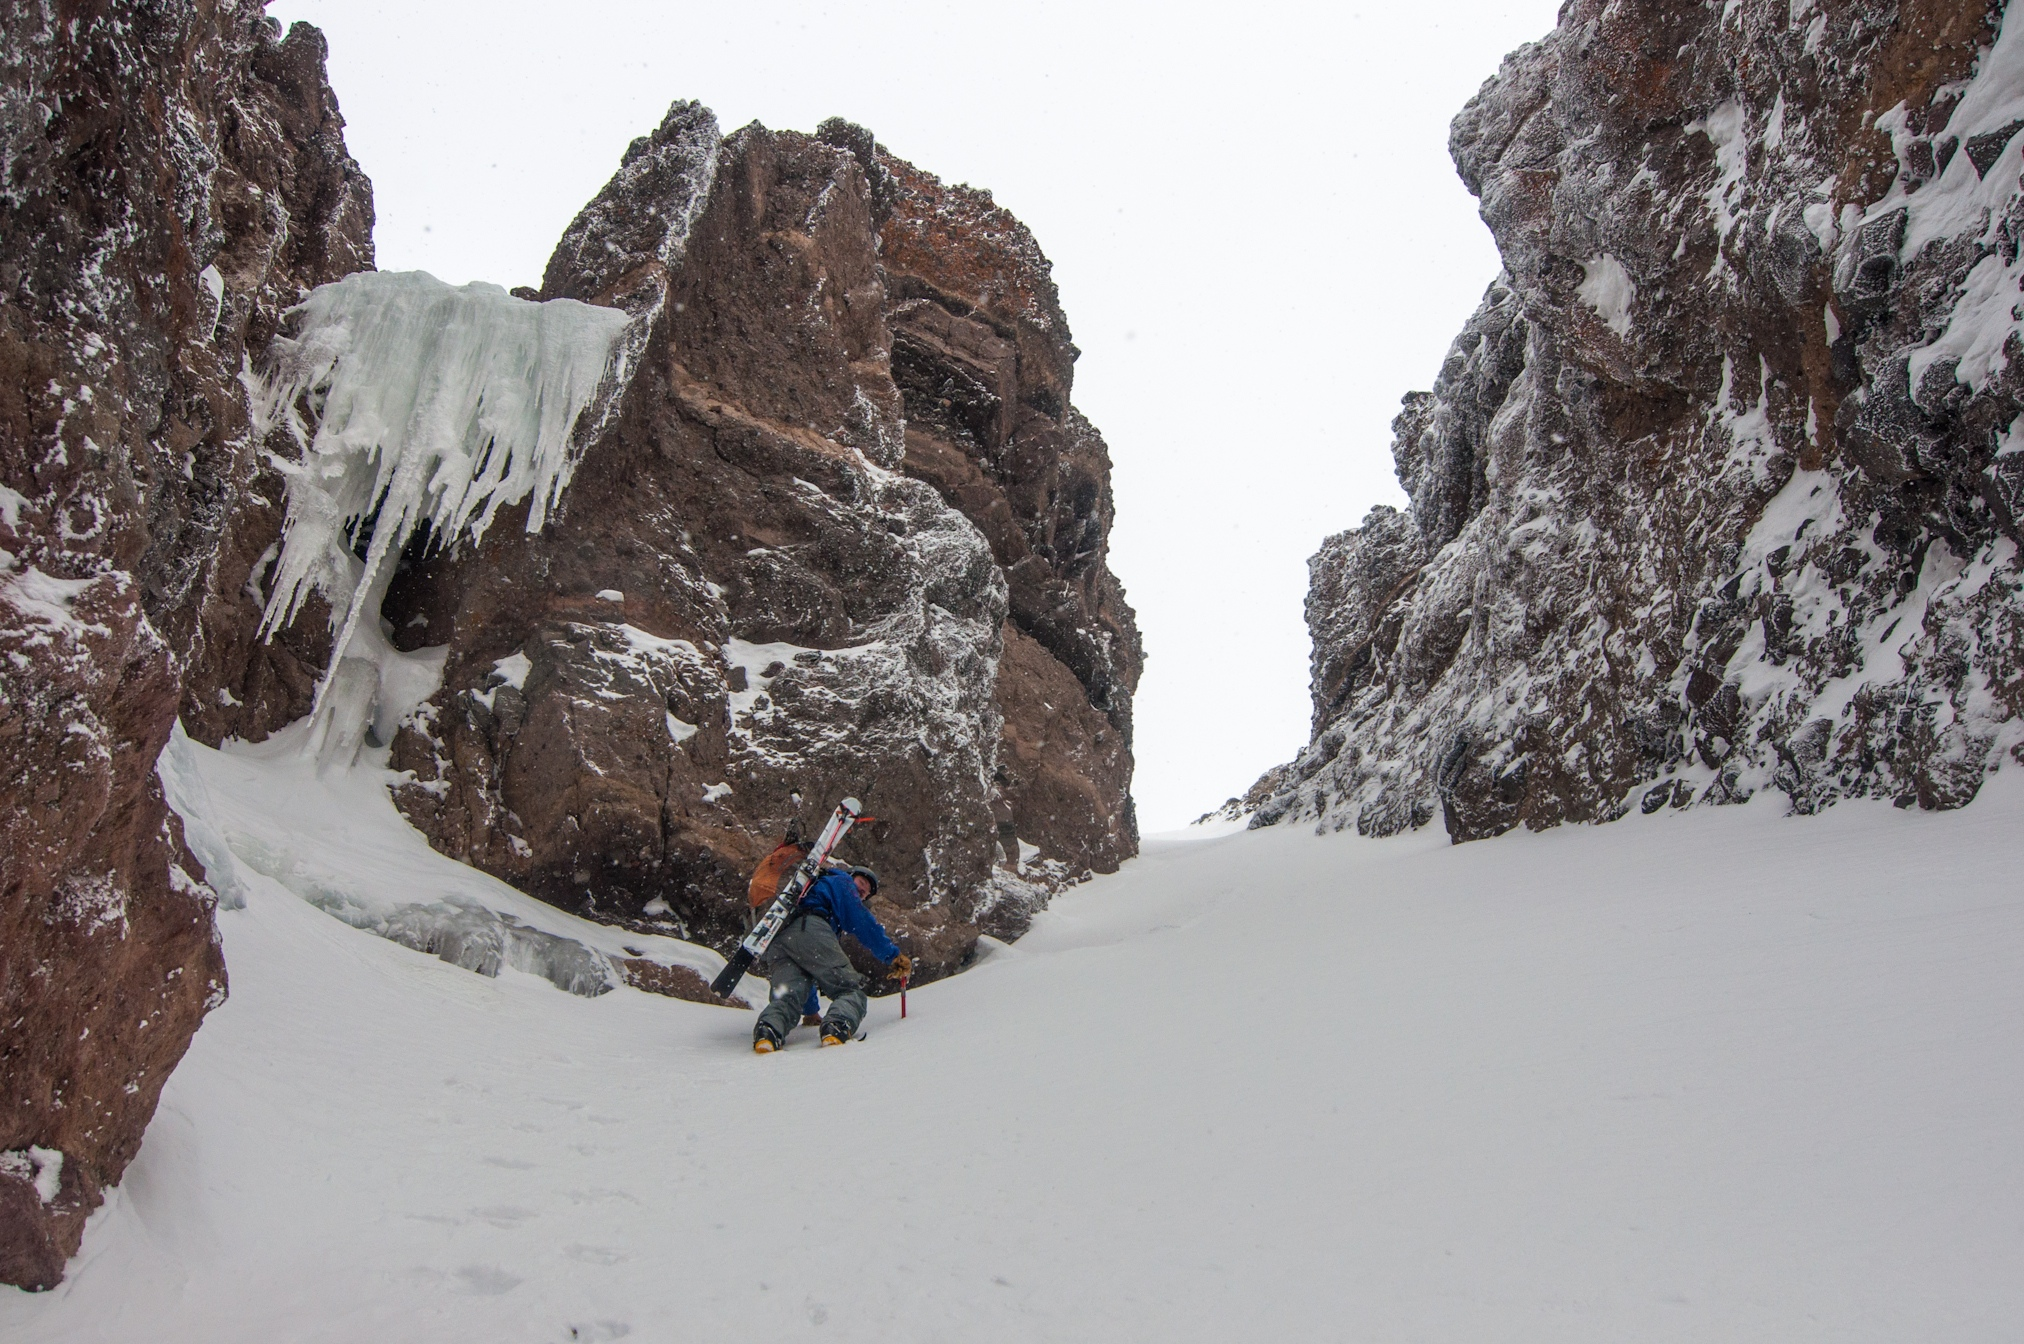 Climbing past the icefall below the crux choke